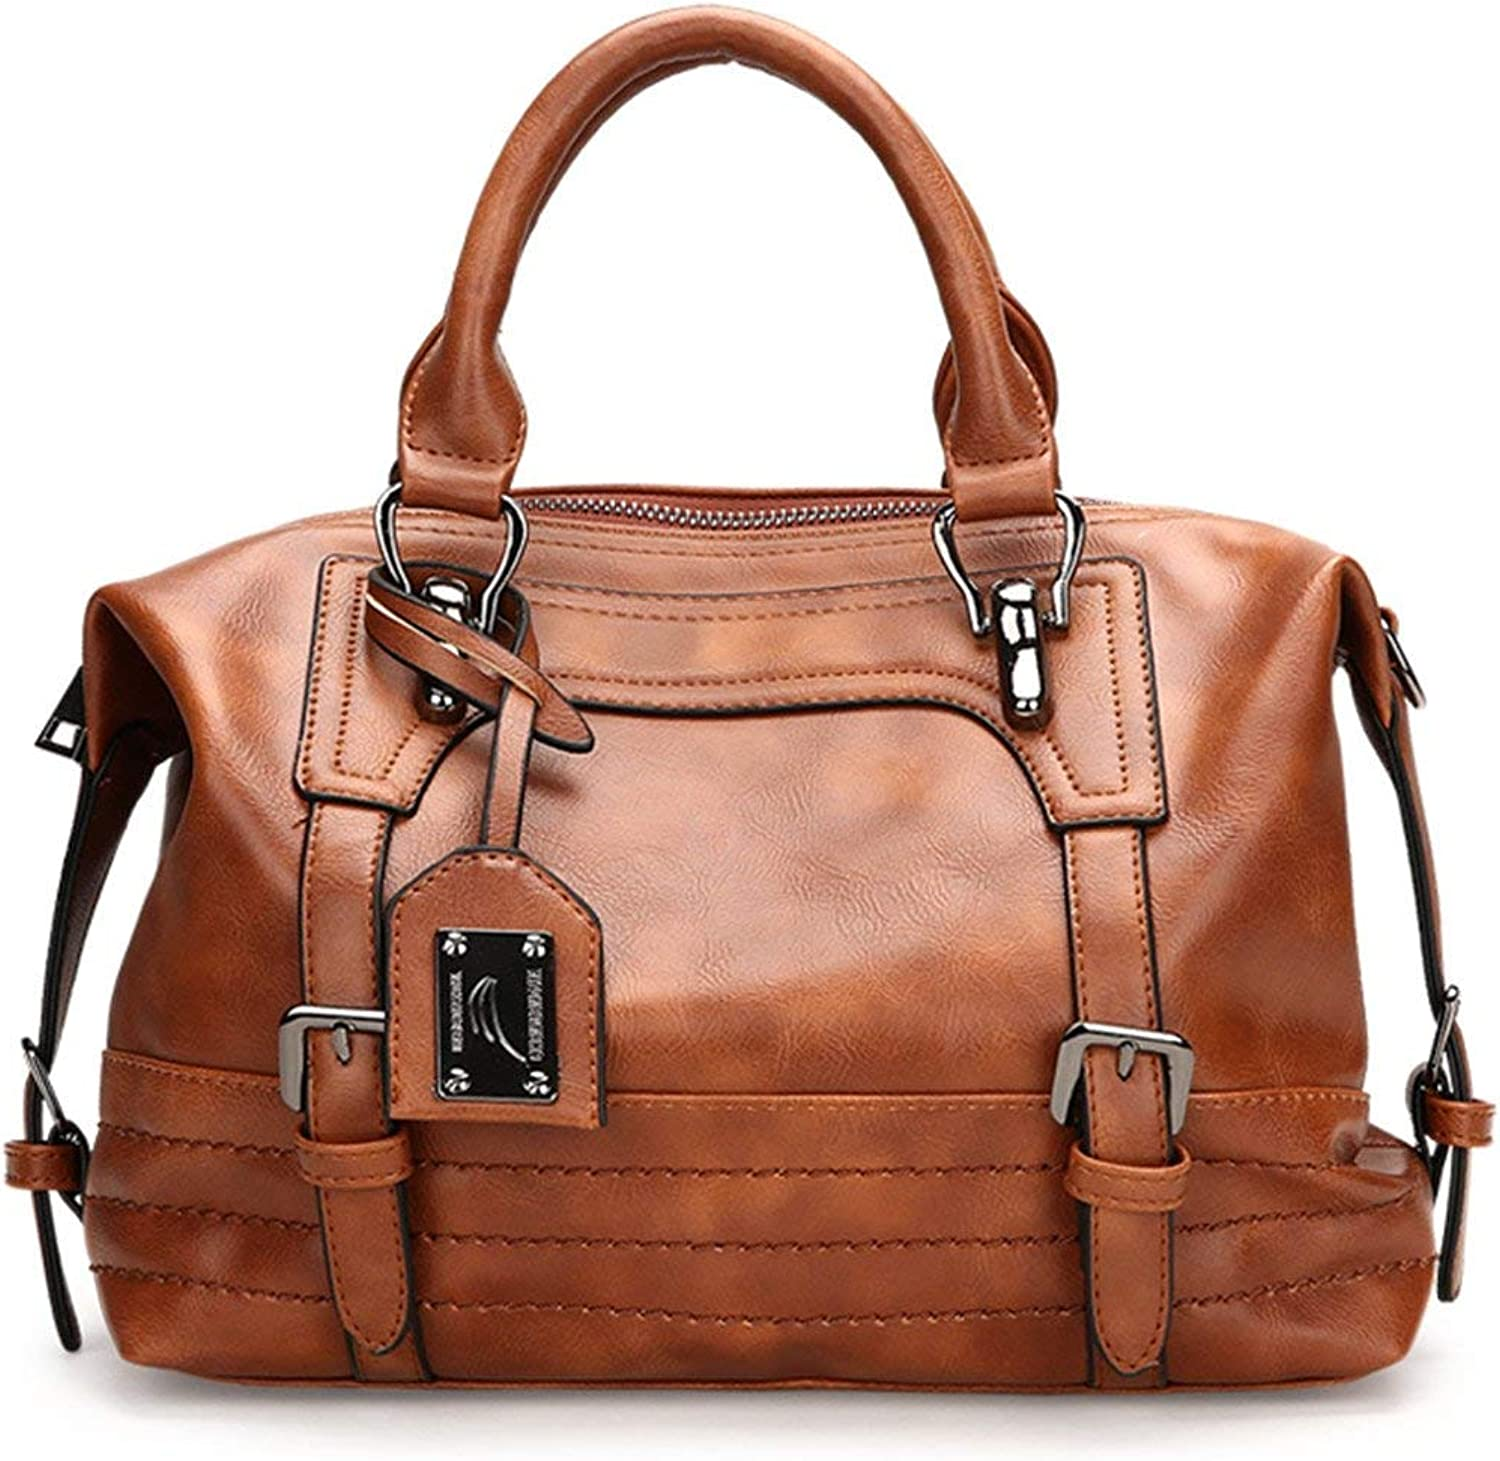 Women Retro Handbag, Oil Wax Faux Leather Shoulder Bag Tote Crossbody Bag for Ladies with Long Strap